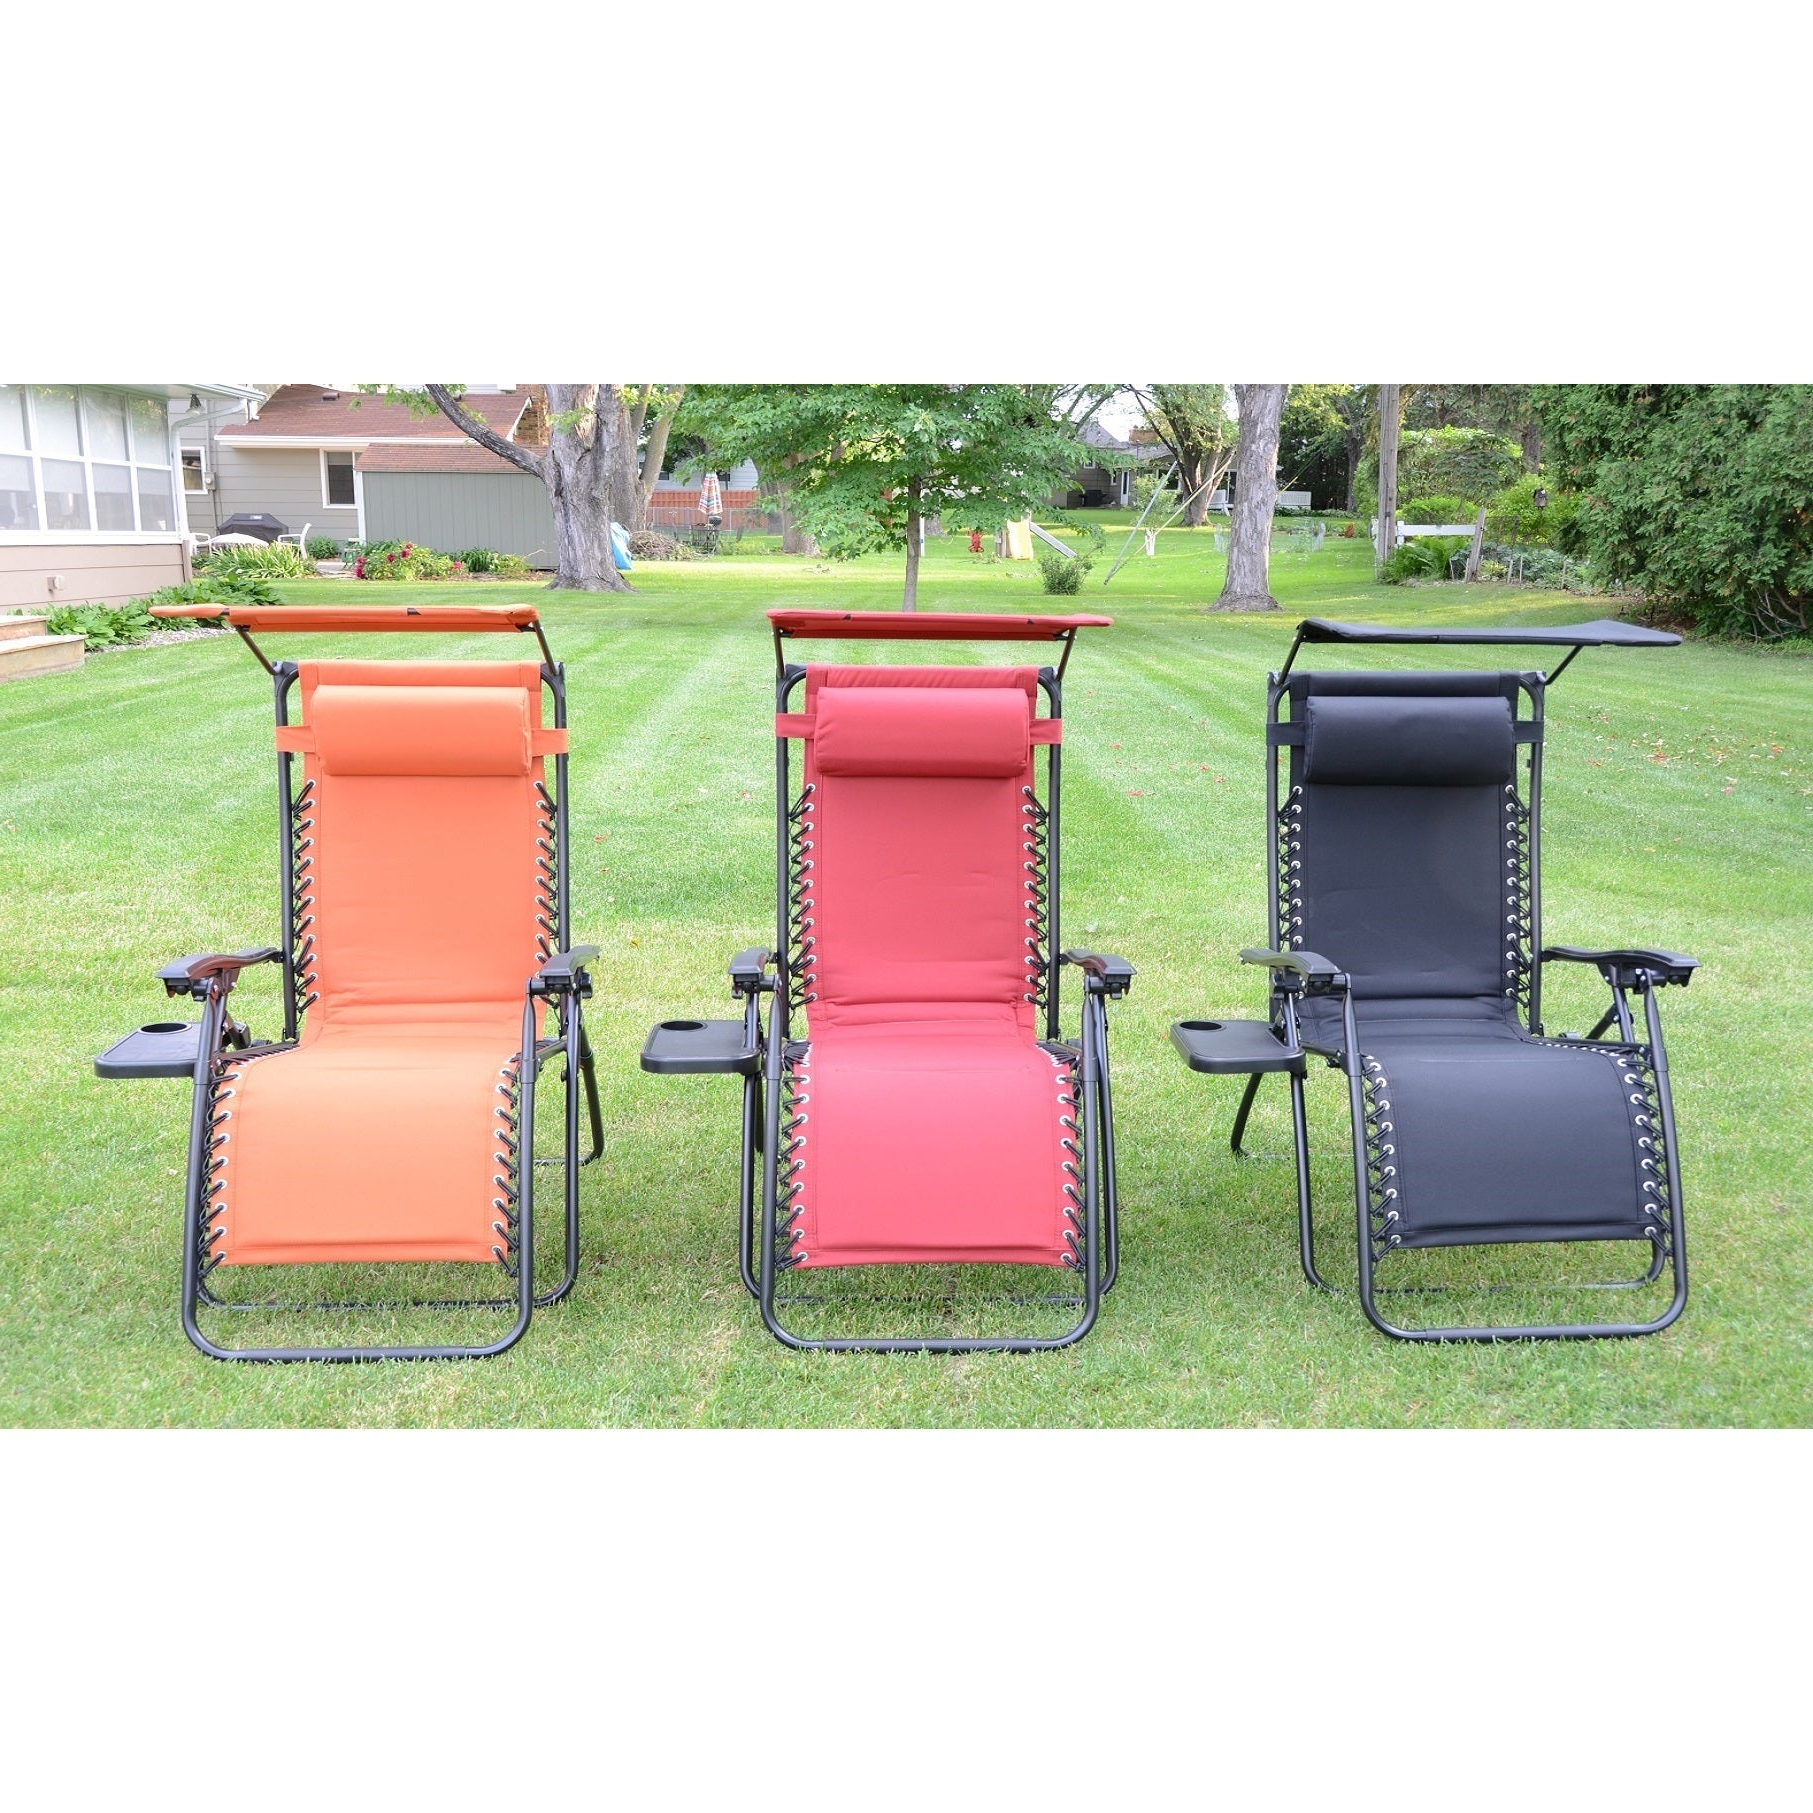 Favorite Styled Shopping Deluxe Padded Zero Gravity Chair With Canopy And Tray Intended For Deluxe Padded Chairs With Canopy And Tray (View 15 of 25)